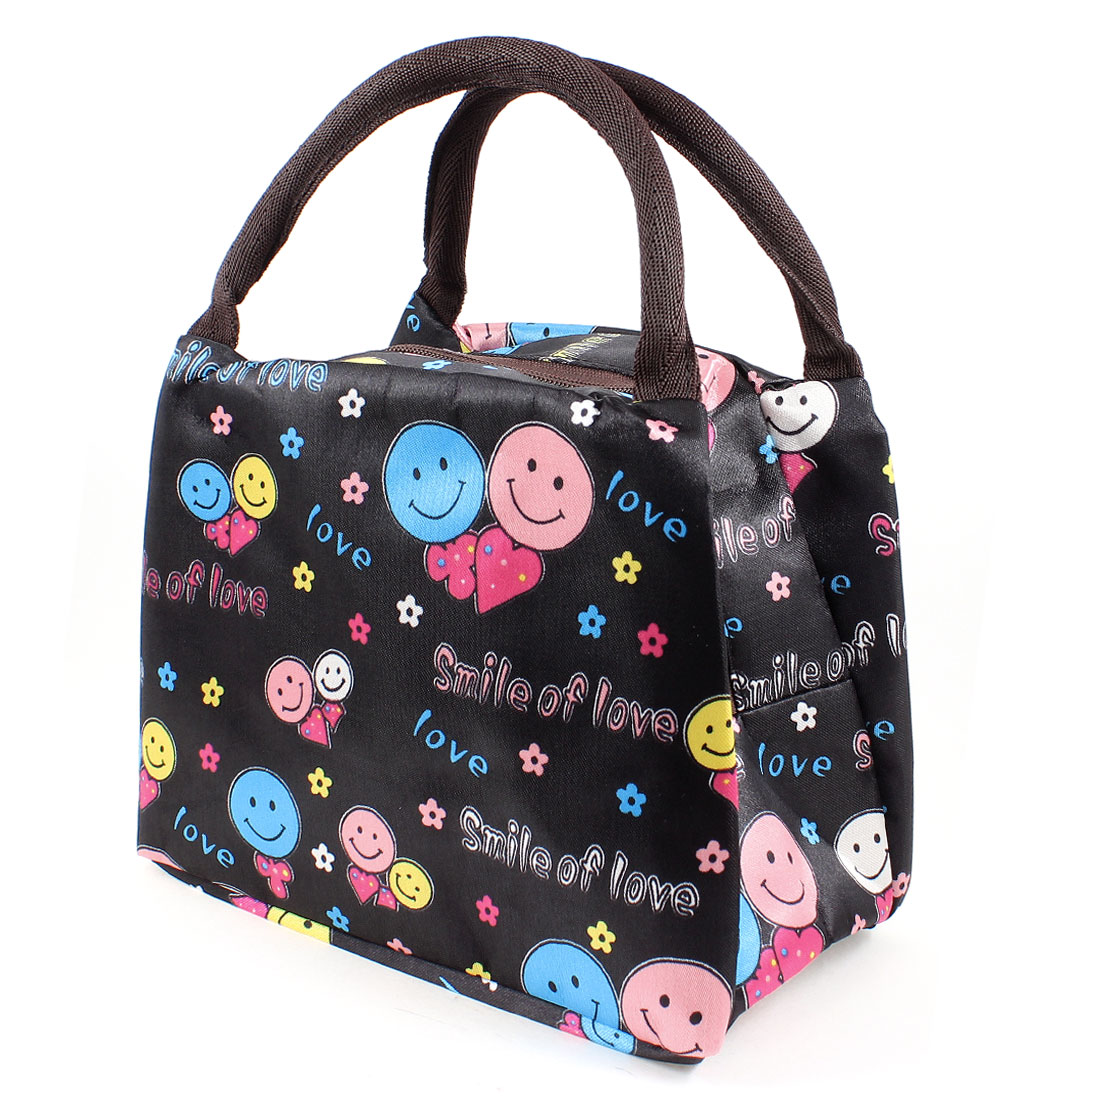 Zipper Closure Design Letters Smile Face Shape Pattern Shopping Handbag Black